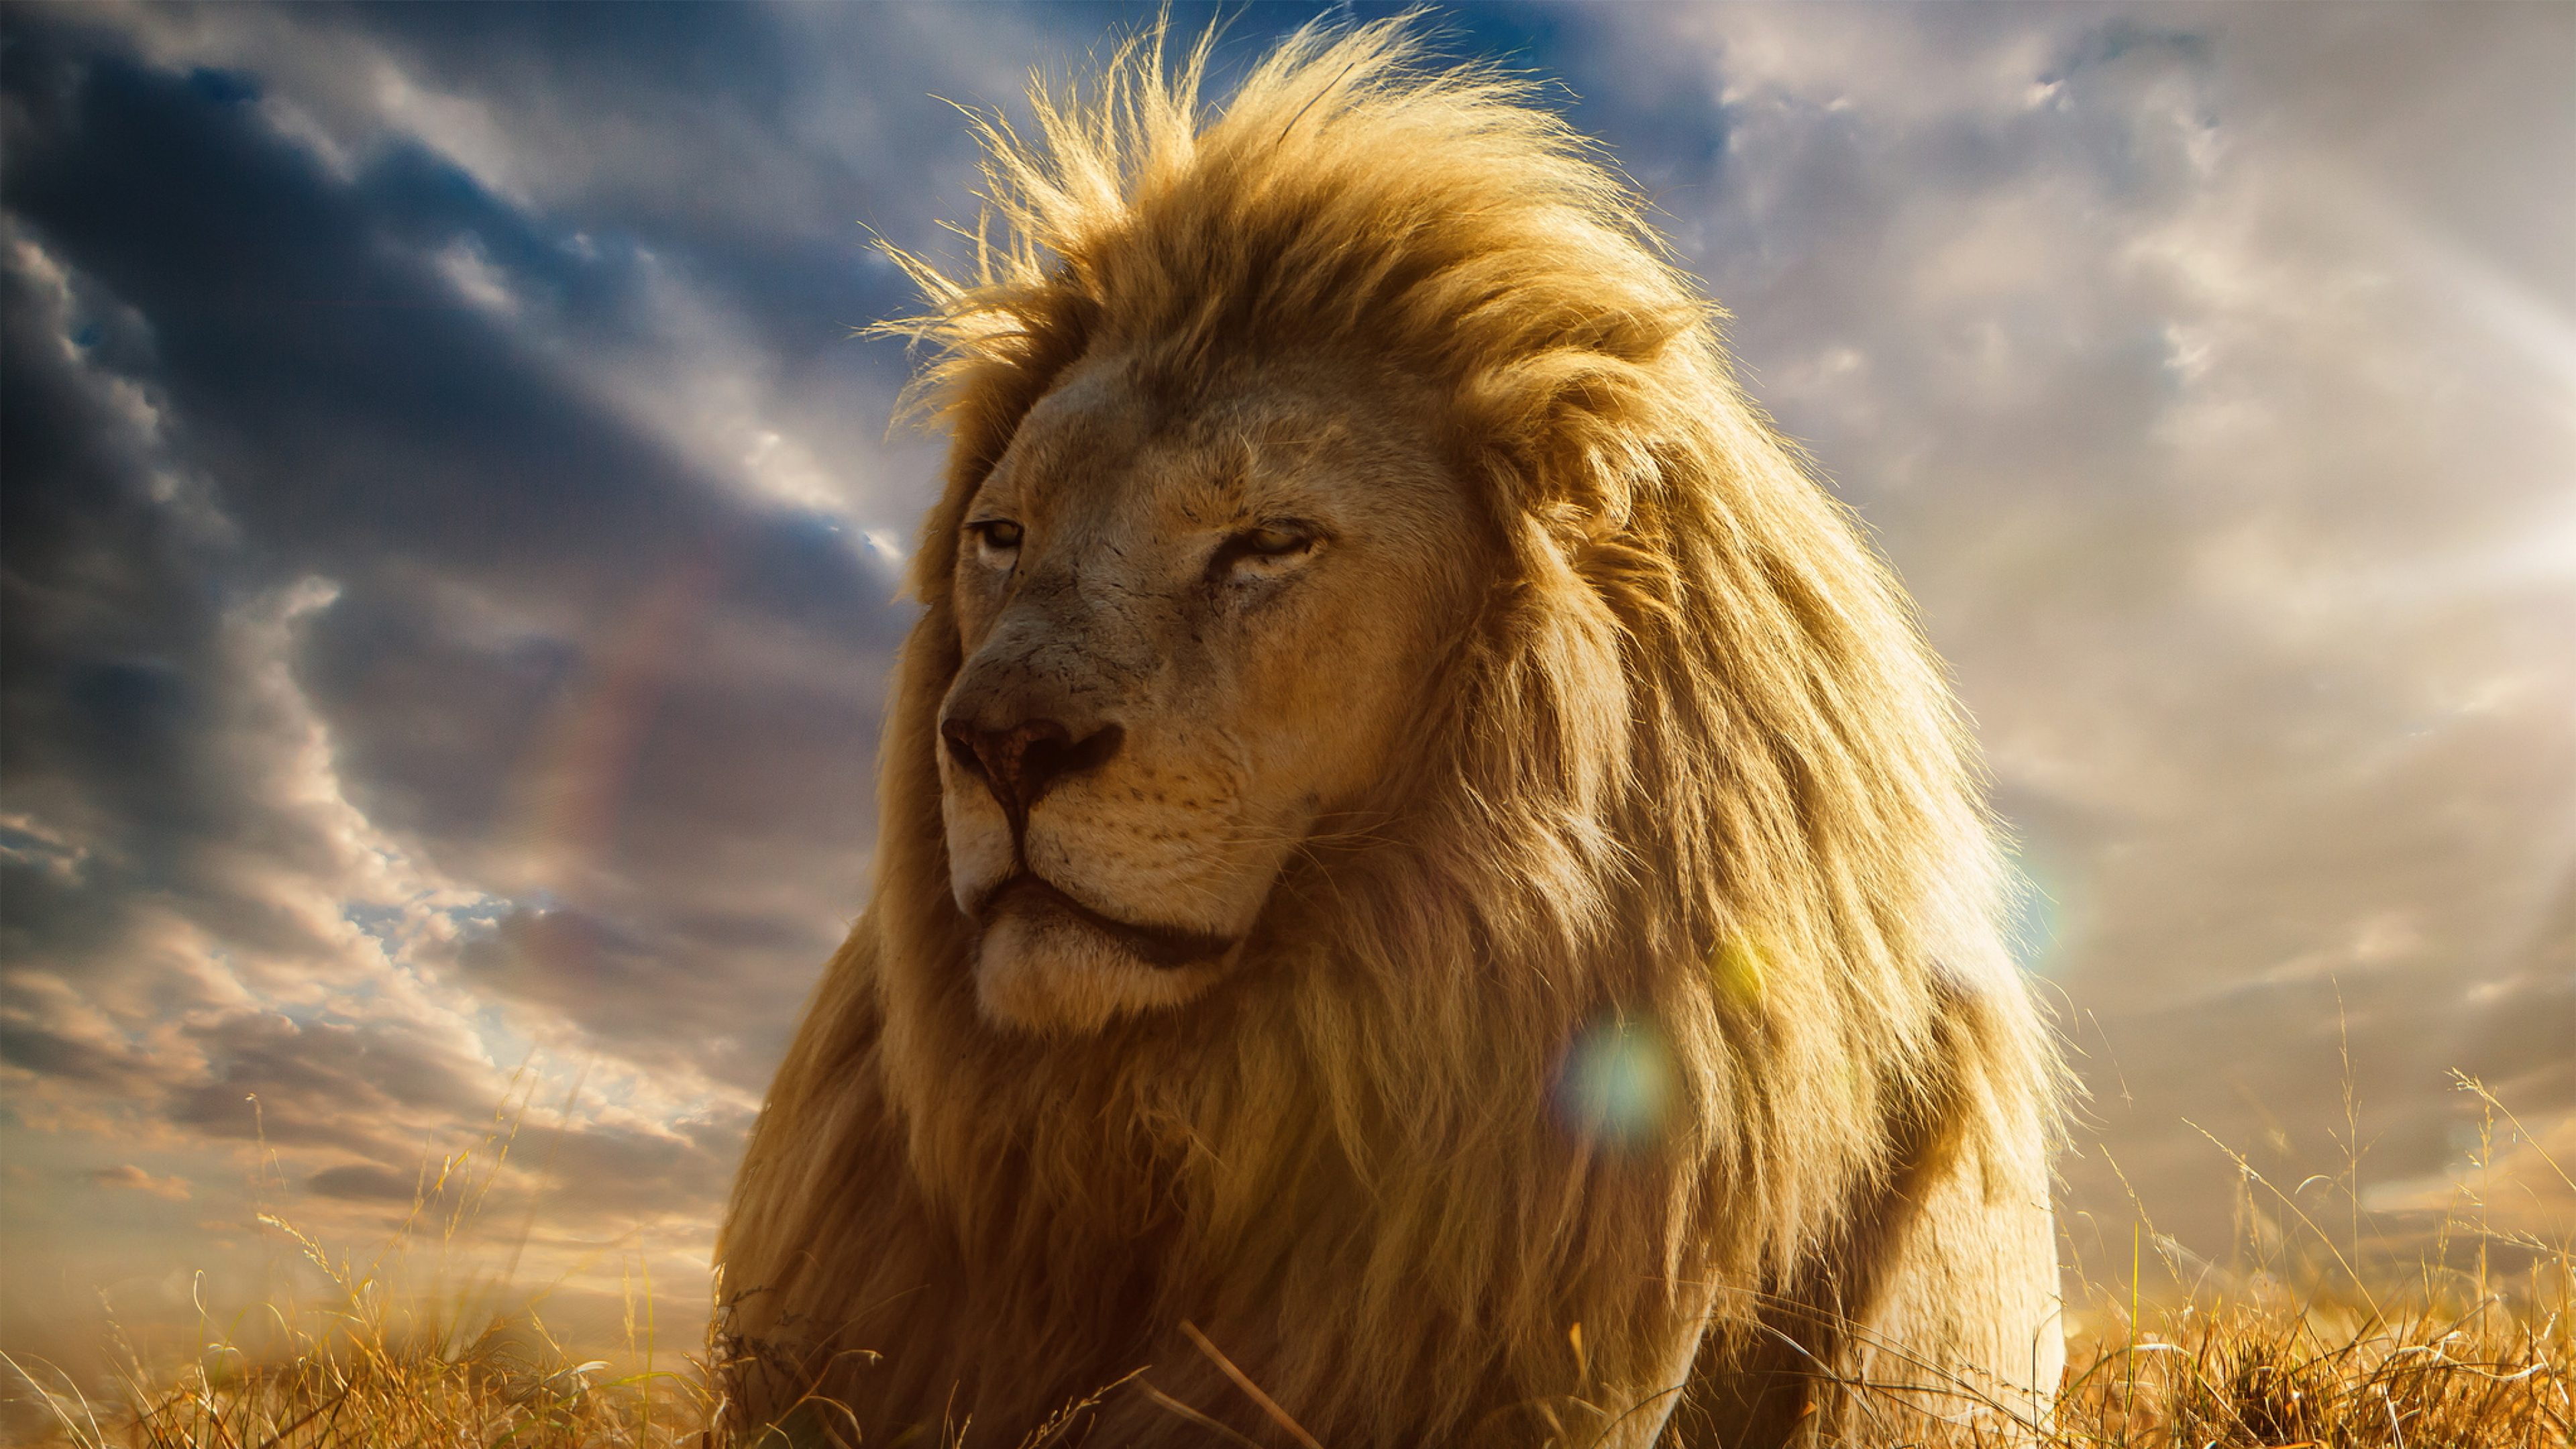 Lion wallpapers 4k full hd pictures - Lion 4k wallpaper for mobile ...